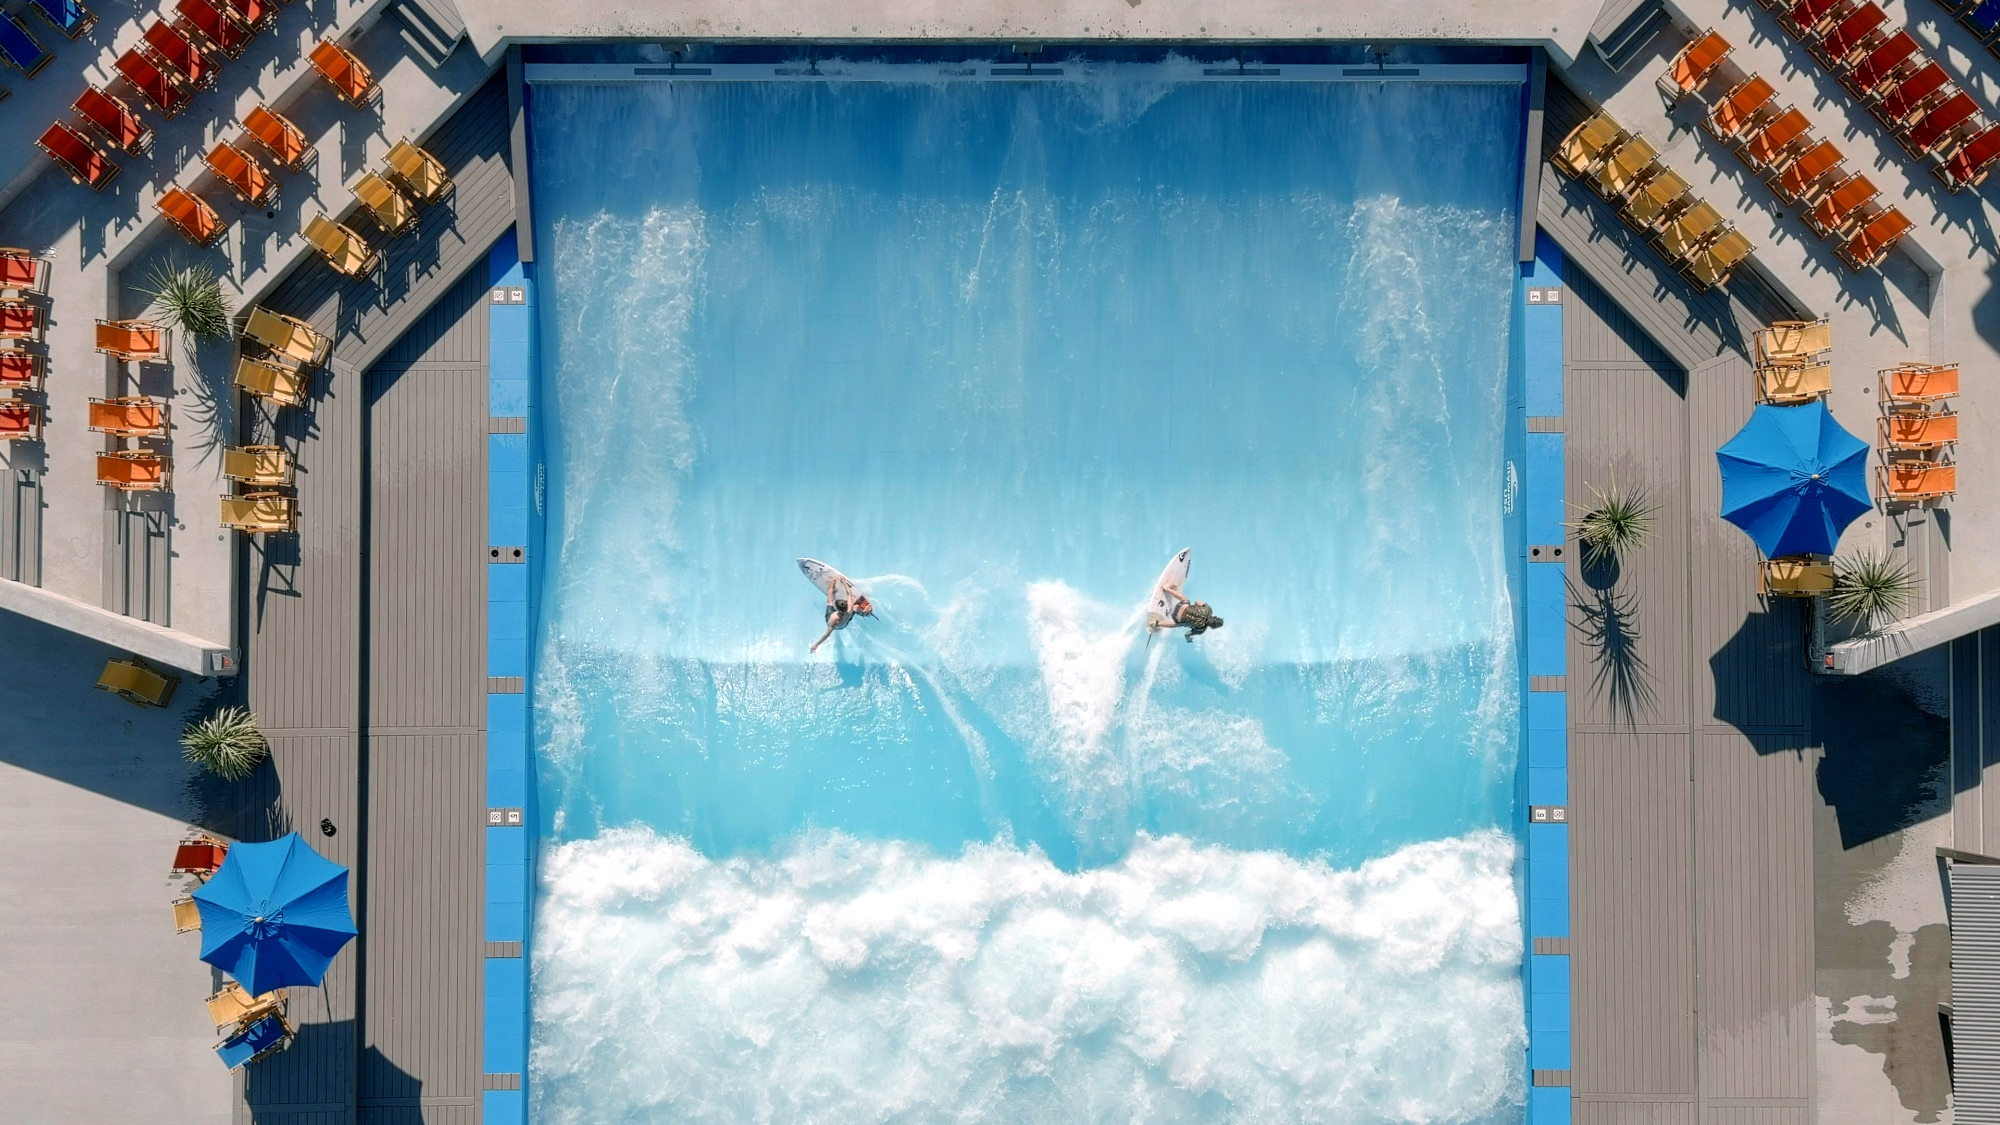 how do standing wave pools work?